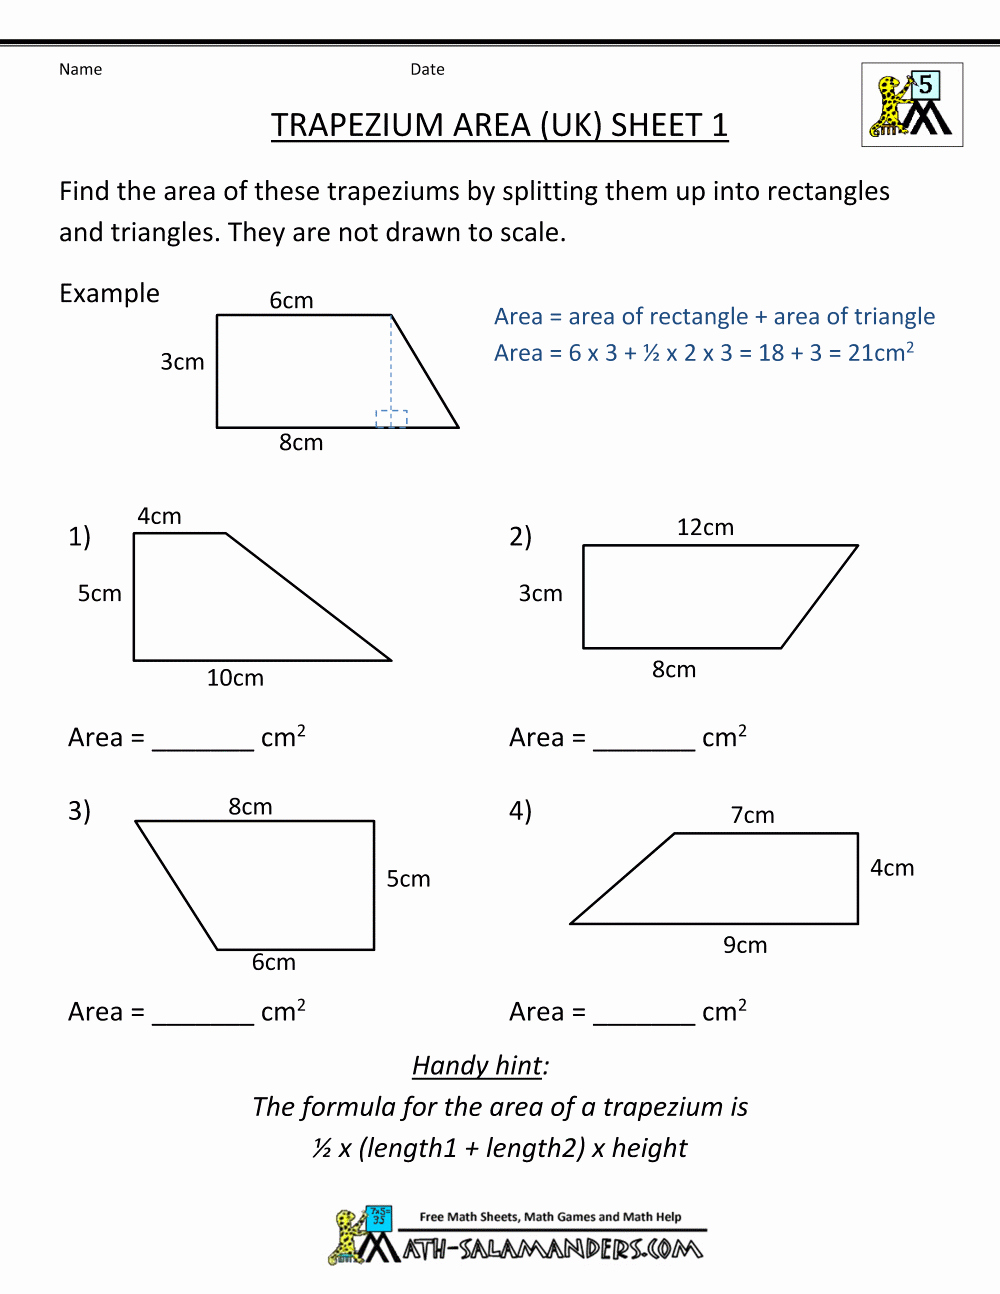 6th Grade Math Puzzle Worksheets Inspirational Printable Puzzles for 6th Grade